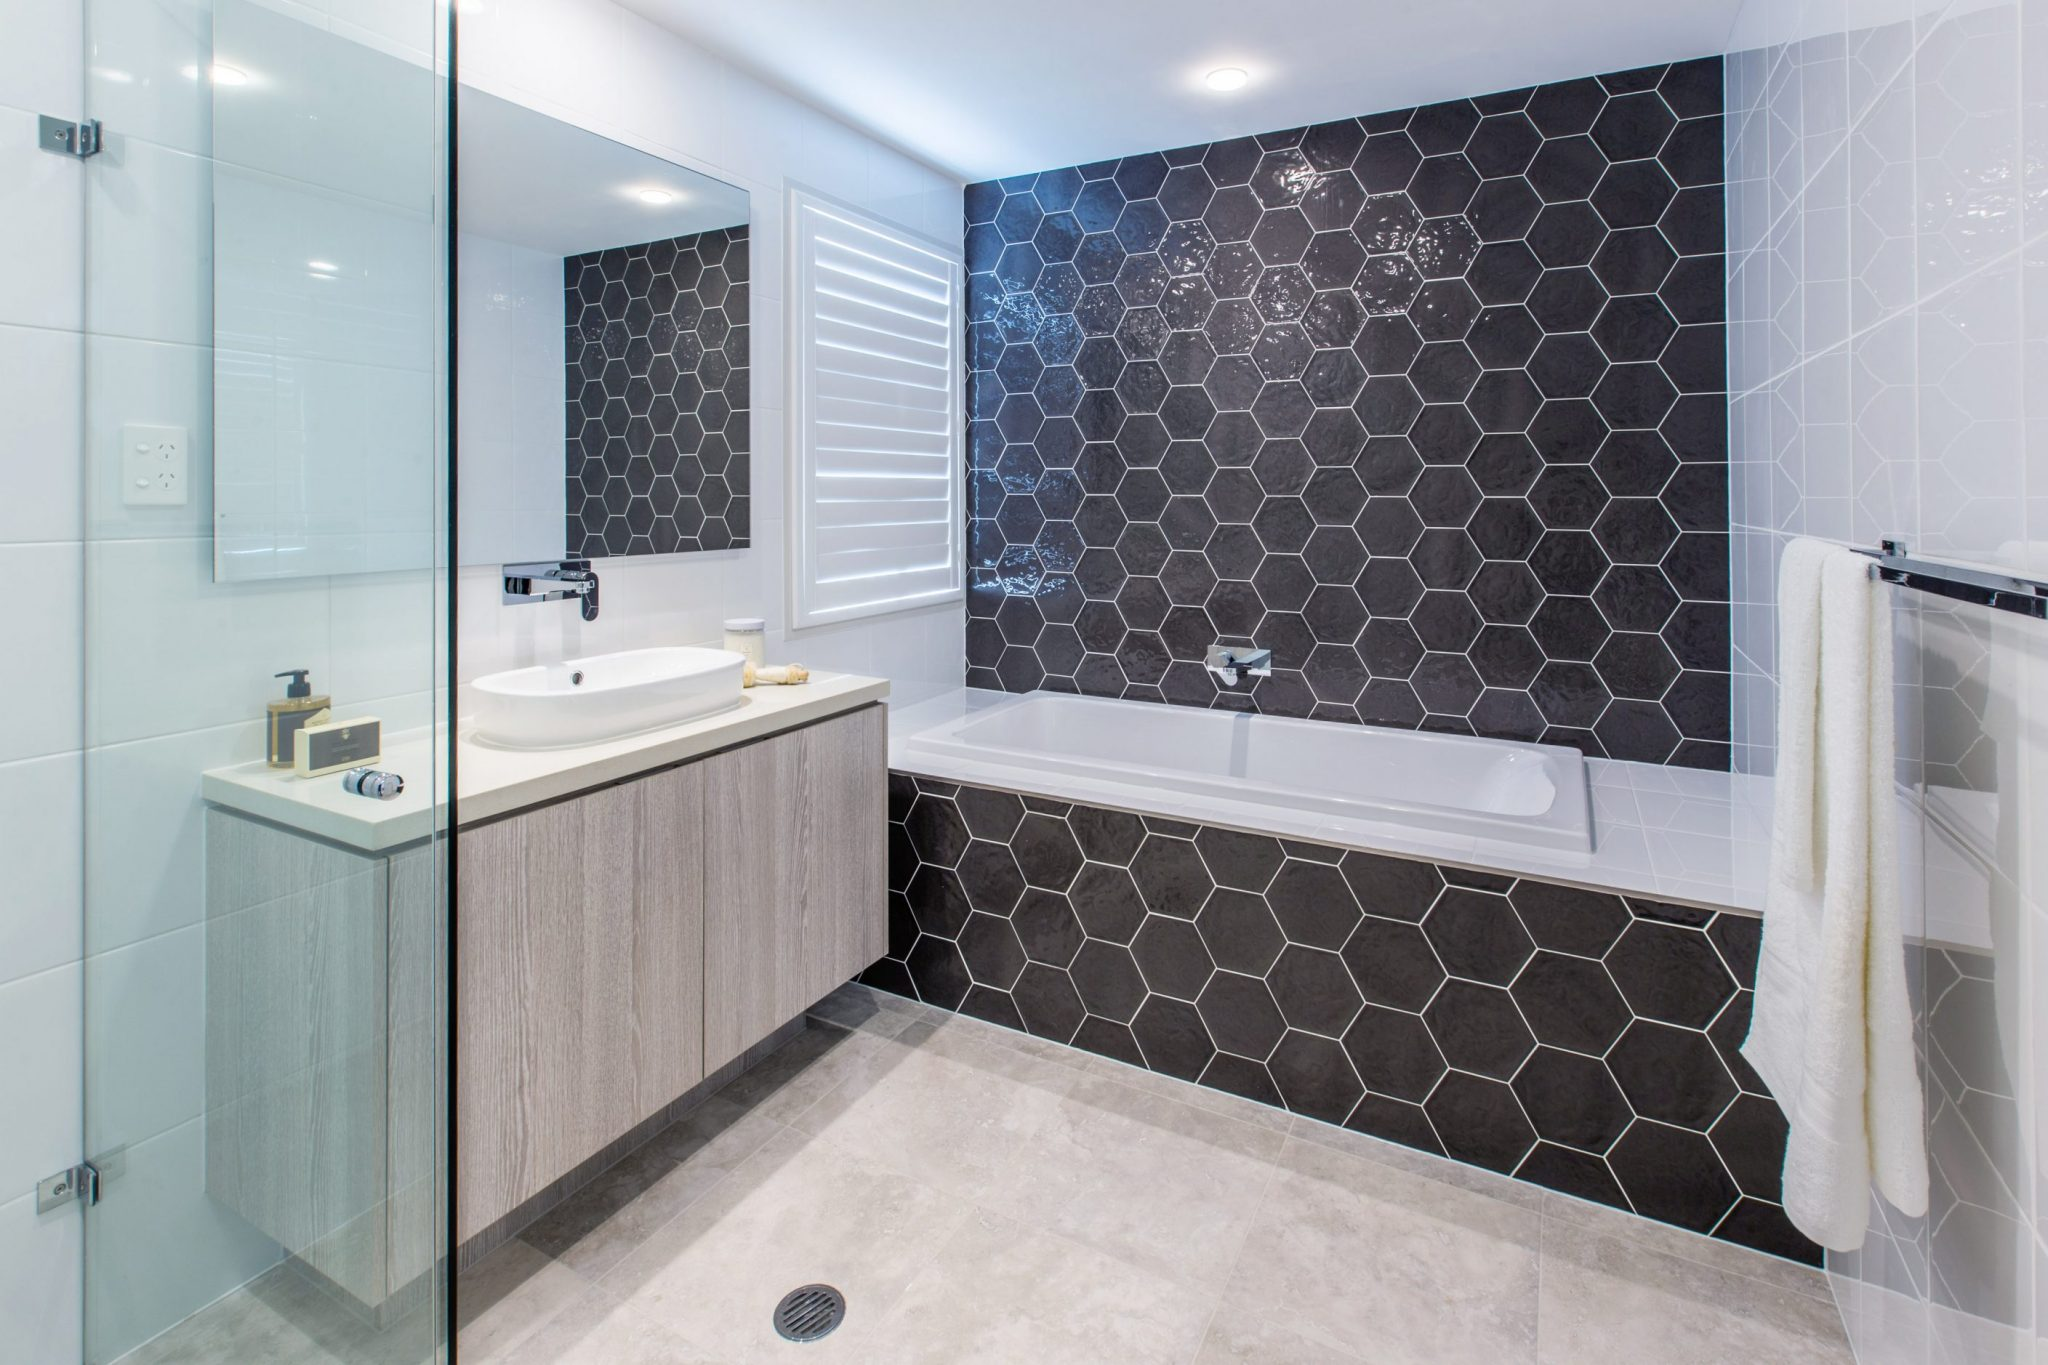 Feature Tiles For Bathroom: Hit Or Miss?